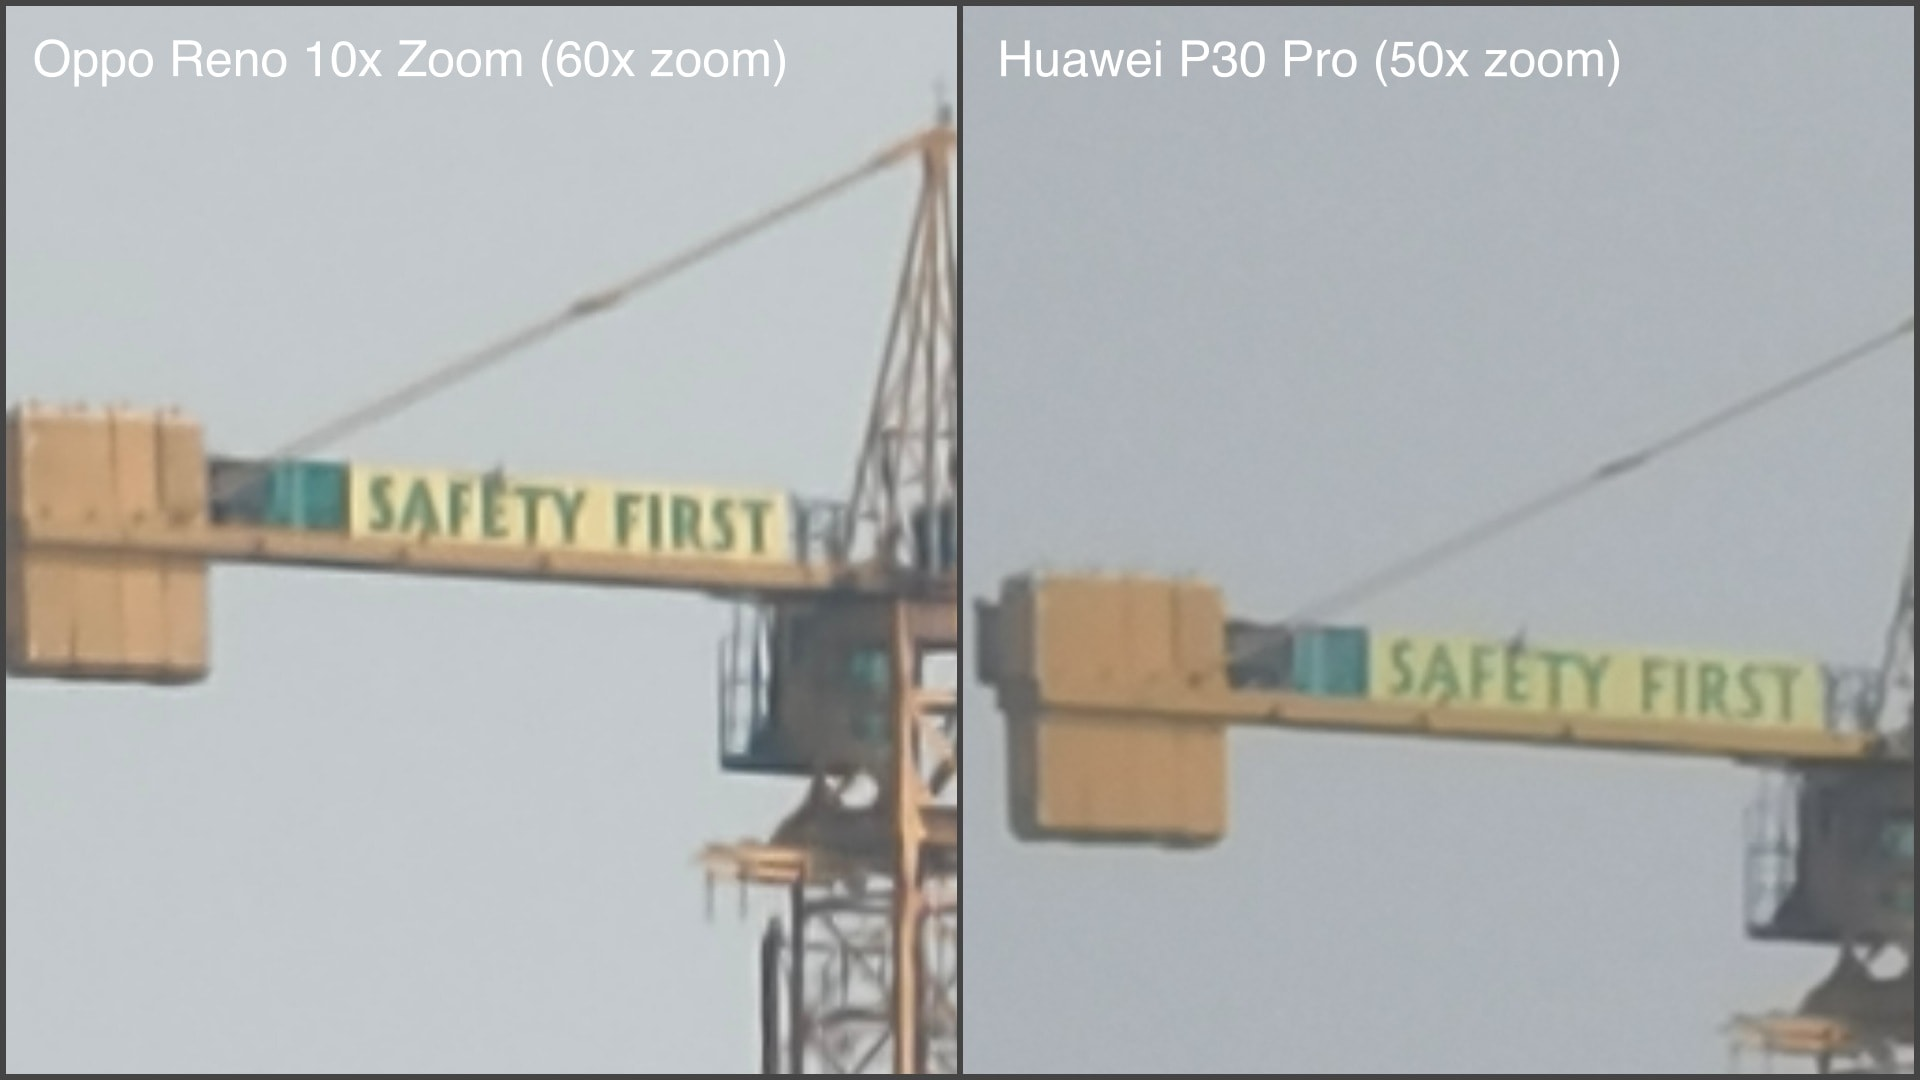 Huawei P30 Pro vs Oppo Reno 10x Zoom: The Battle of the